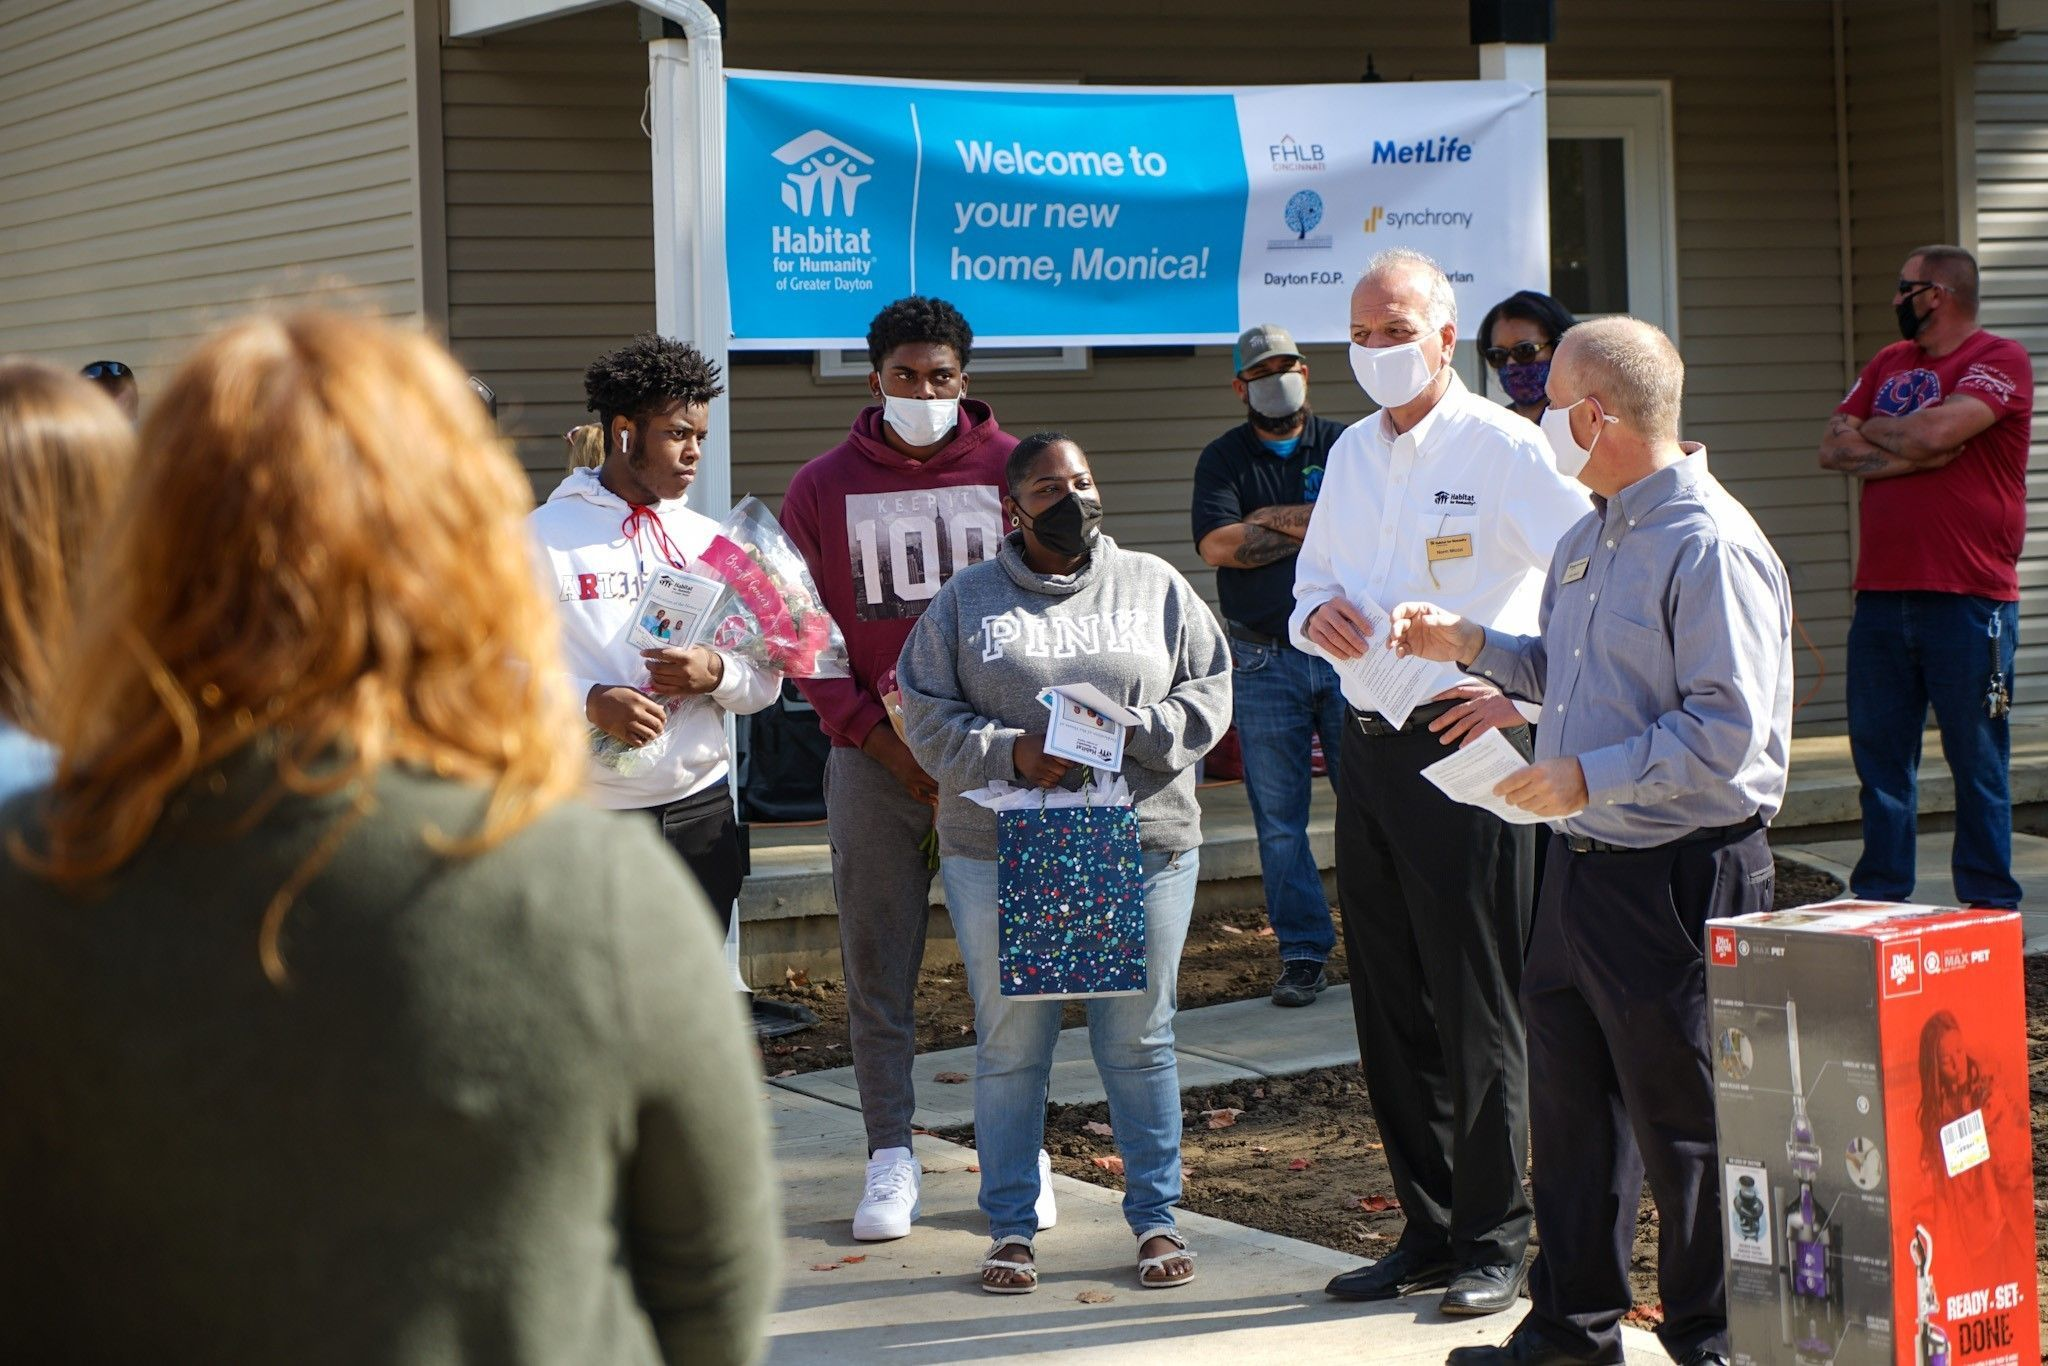 A Hard Working Mother and Her Sons Have a New Home Thanks to Dayton Habitat For Humanity